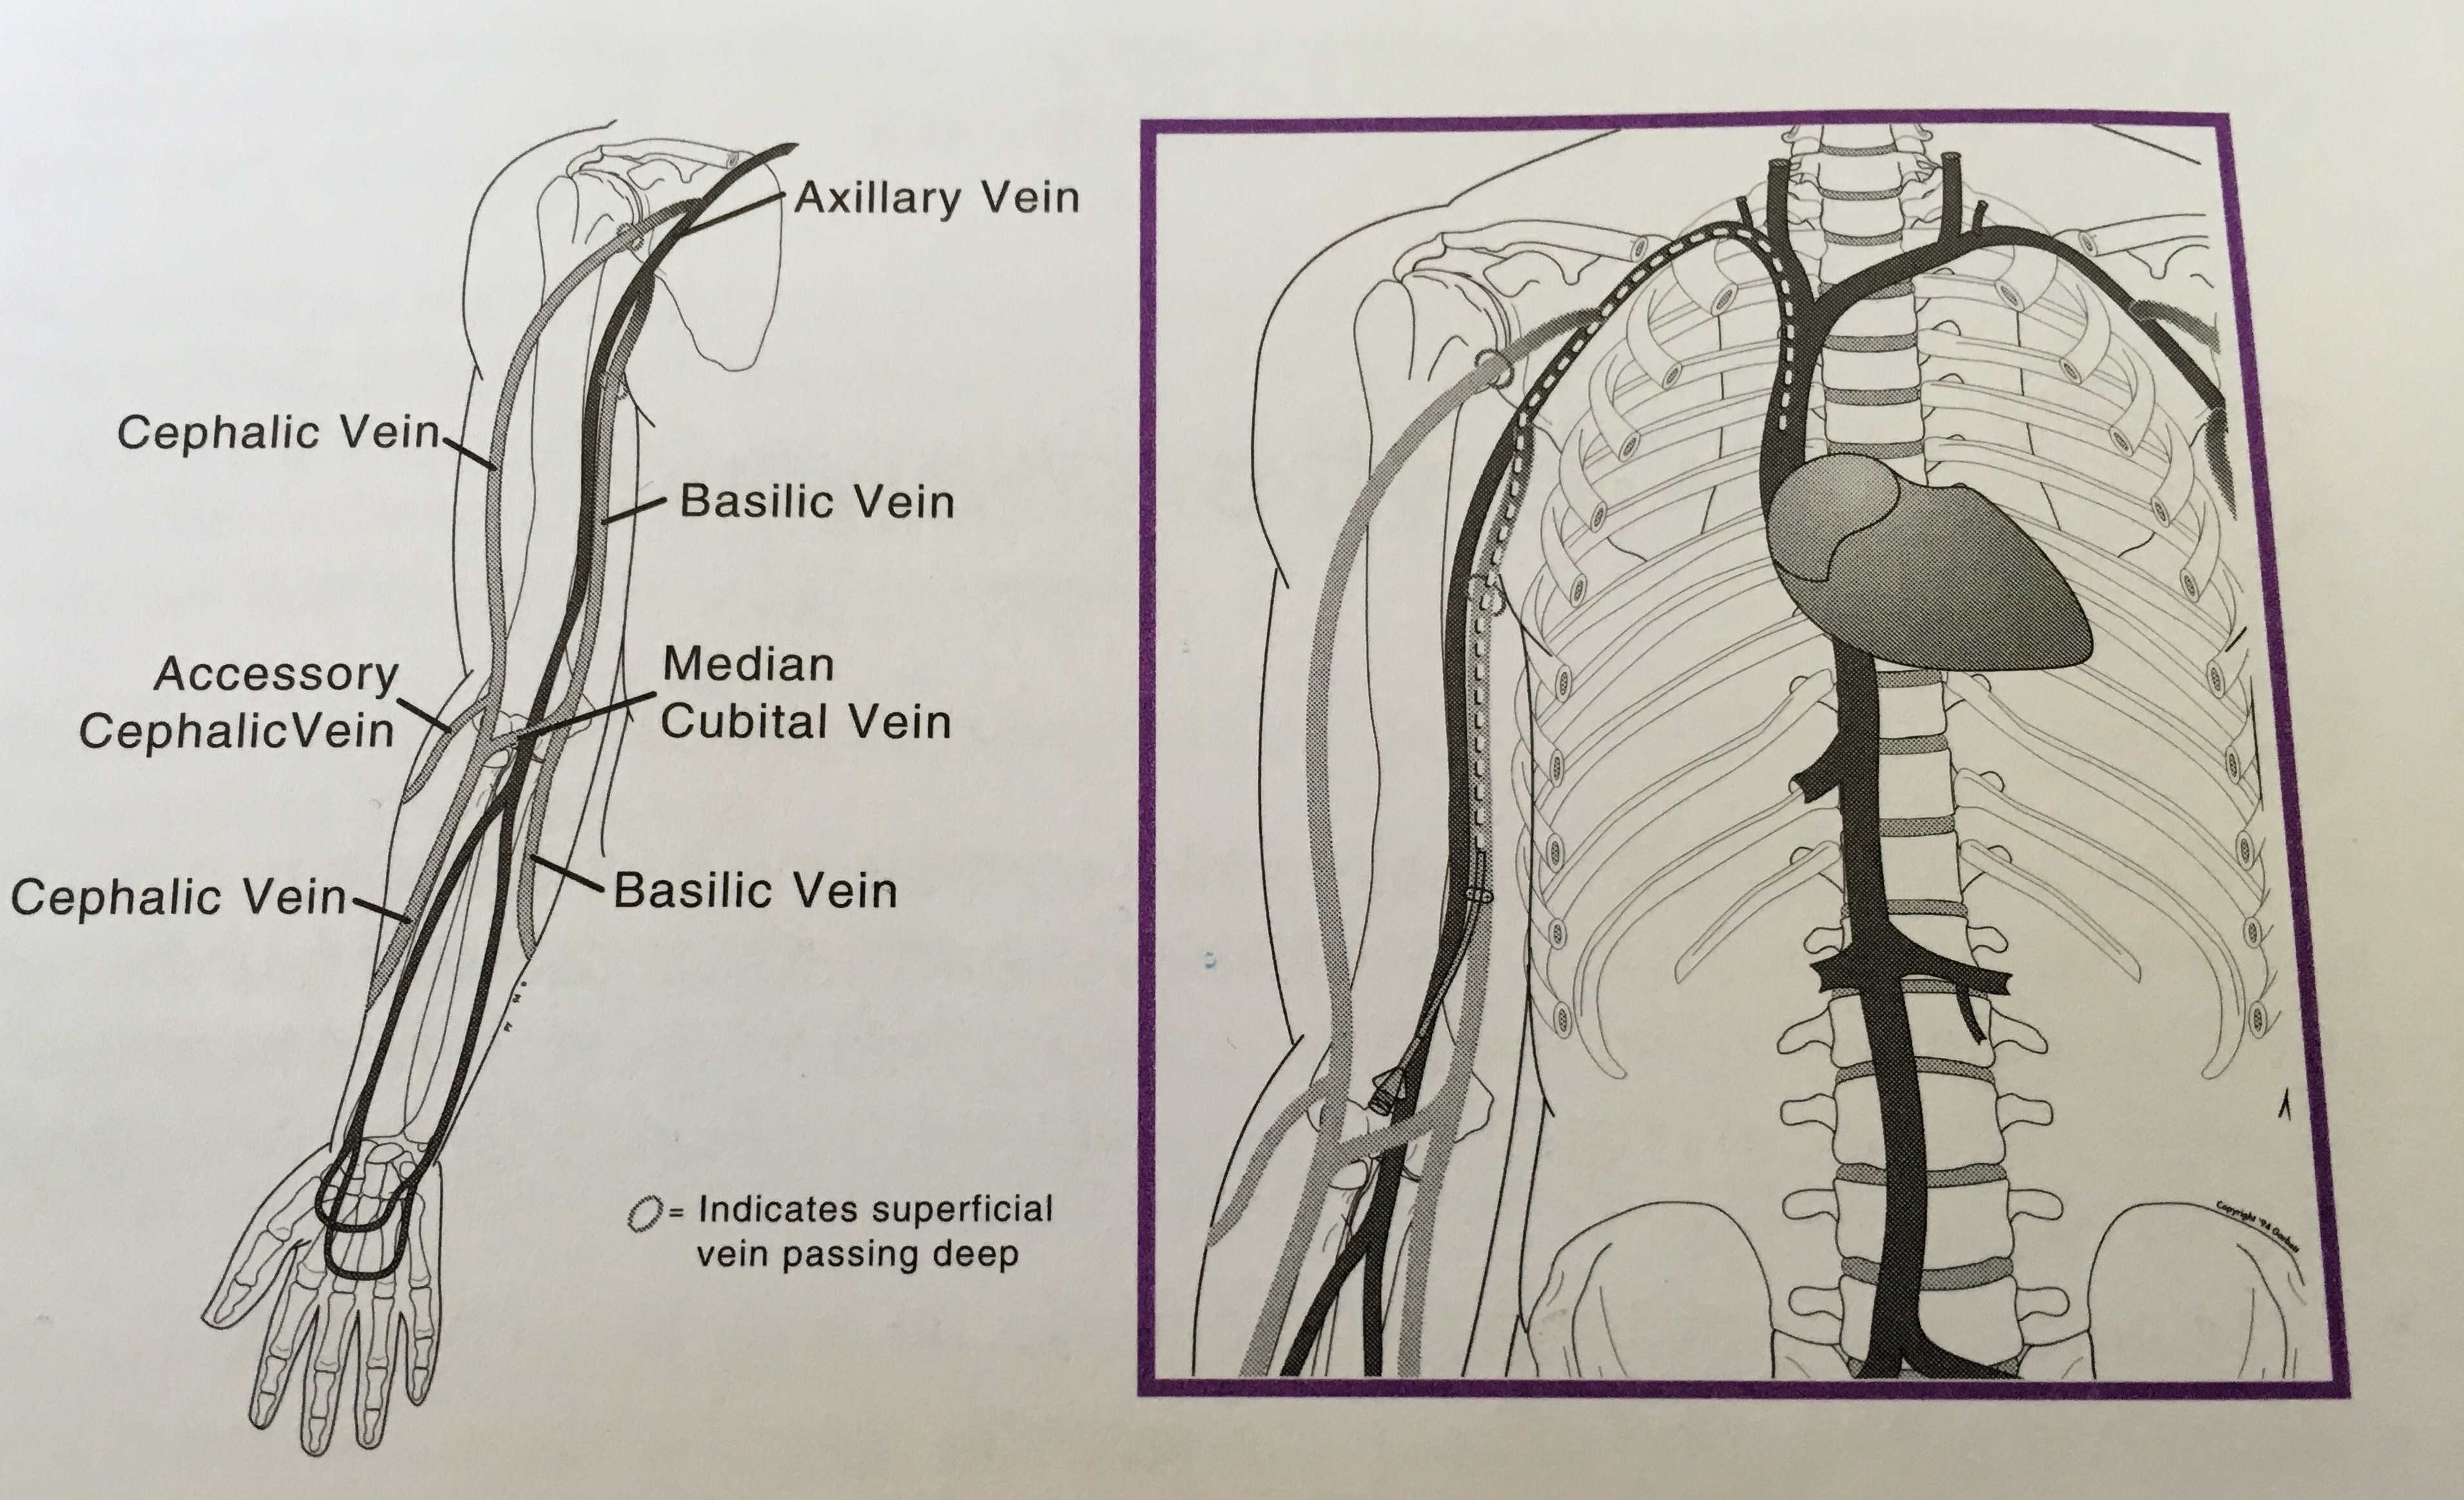 the picc experience – i will survive, Cephalic Vein